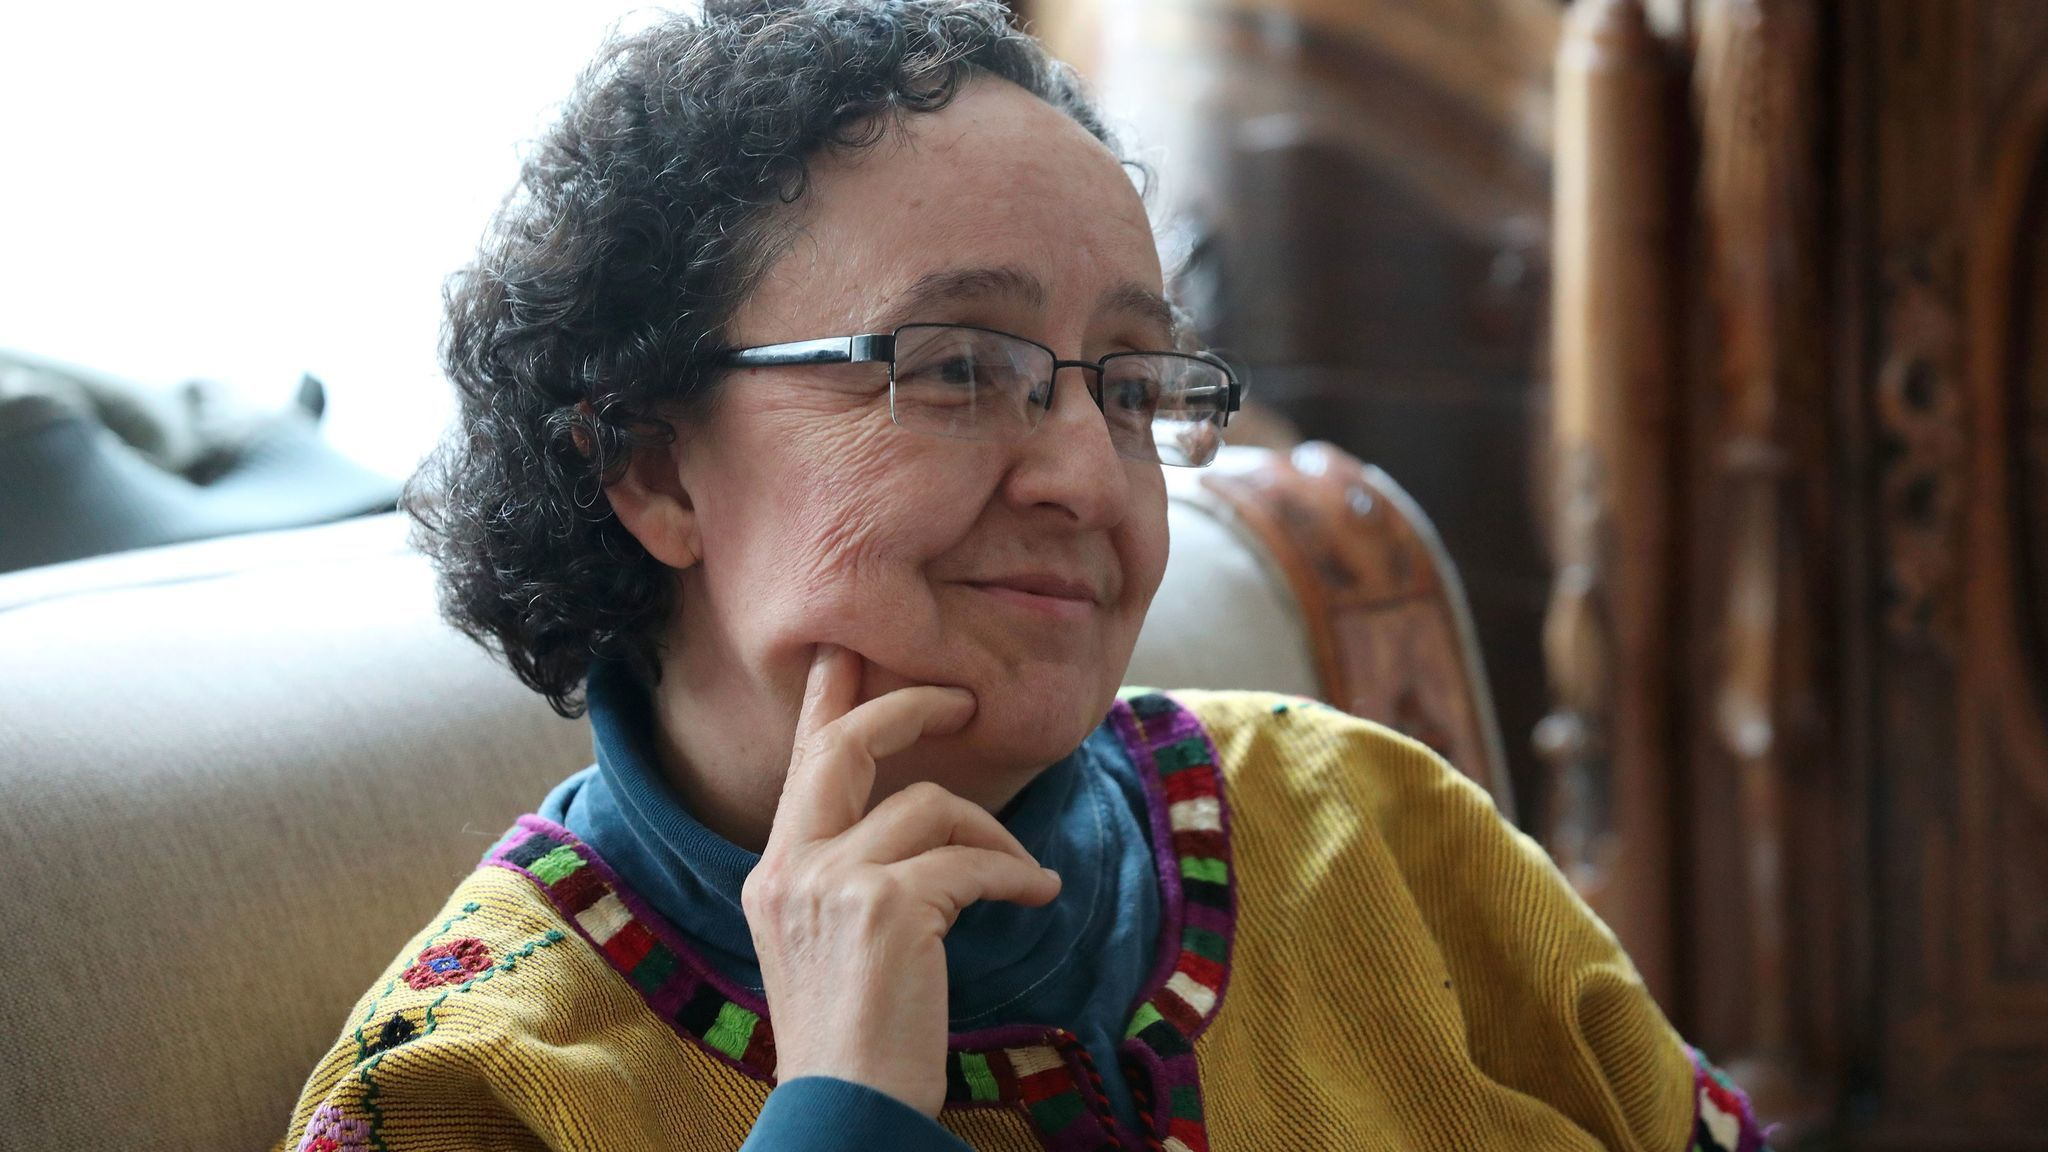 Artist Mónica Mayer is a key Mexican feminist artist.